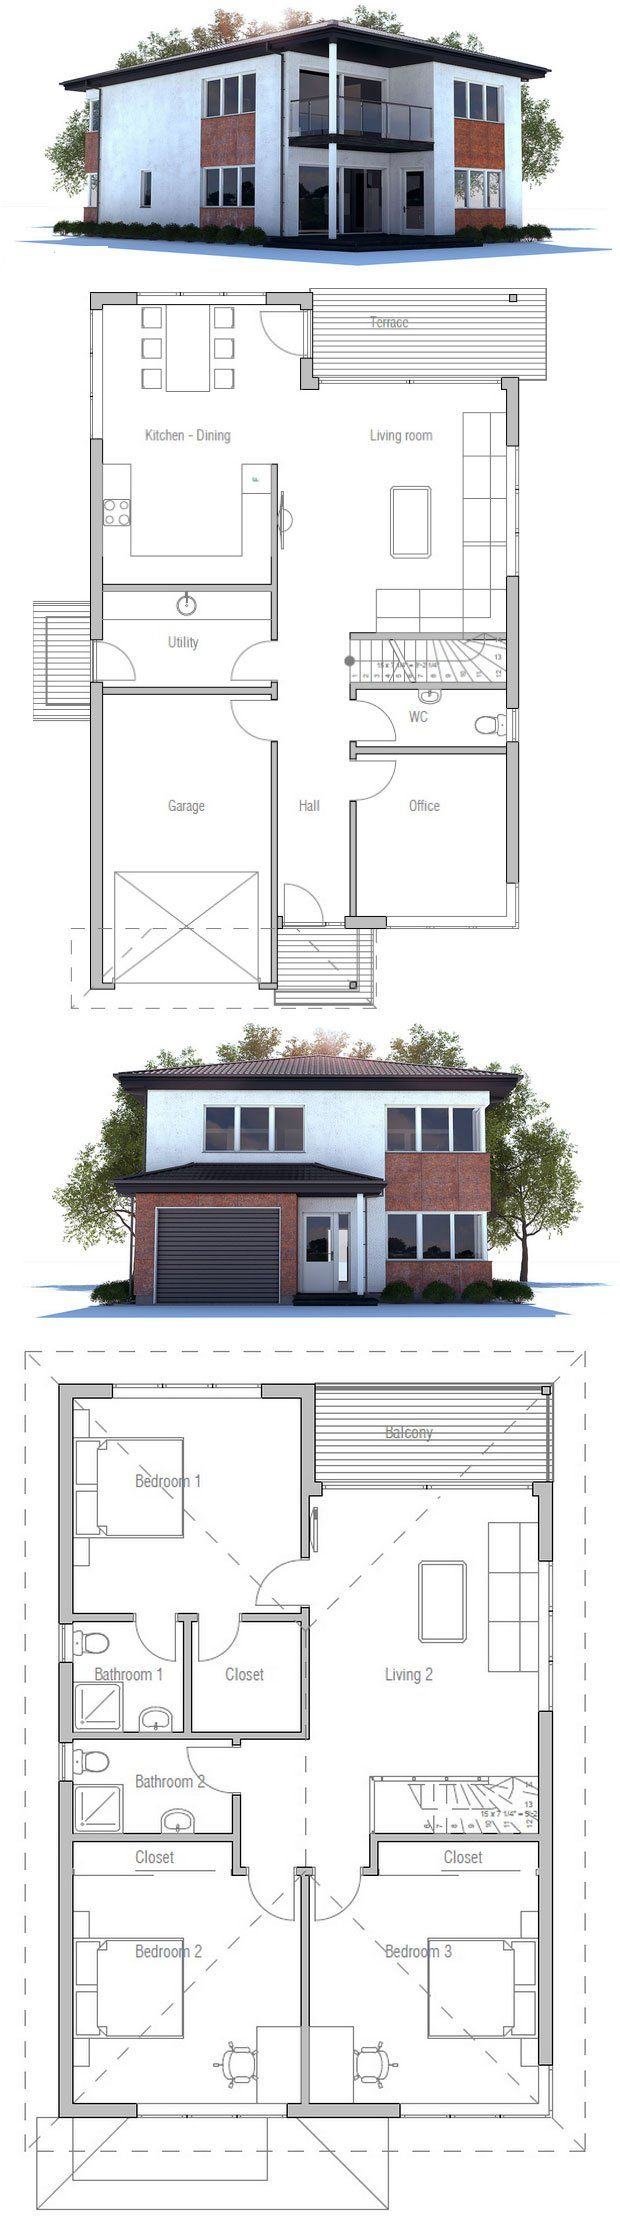 Narrow lot modern house plan floor plan from concepthome Narrow modern house plans